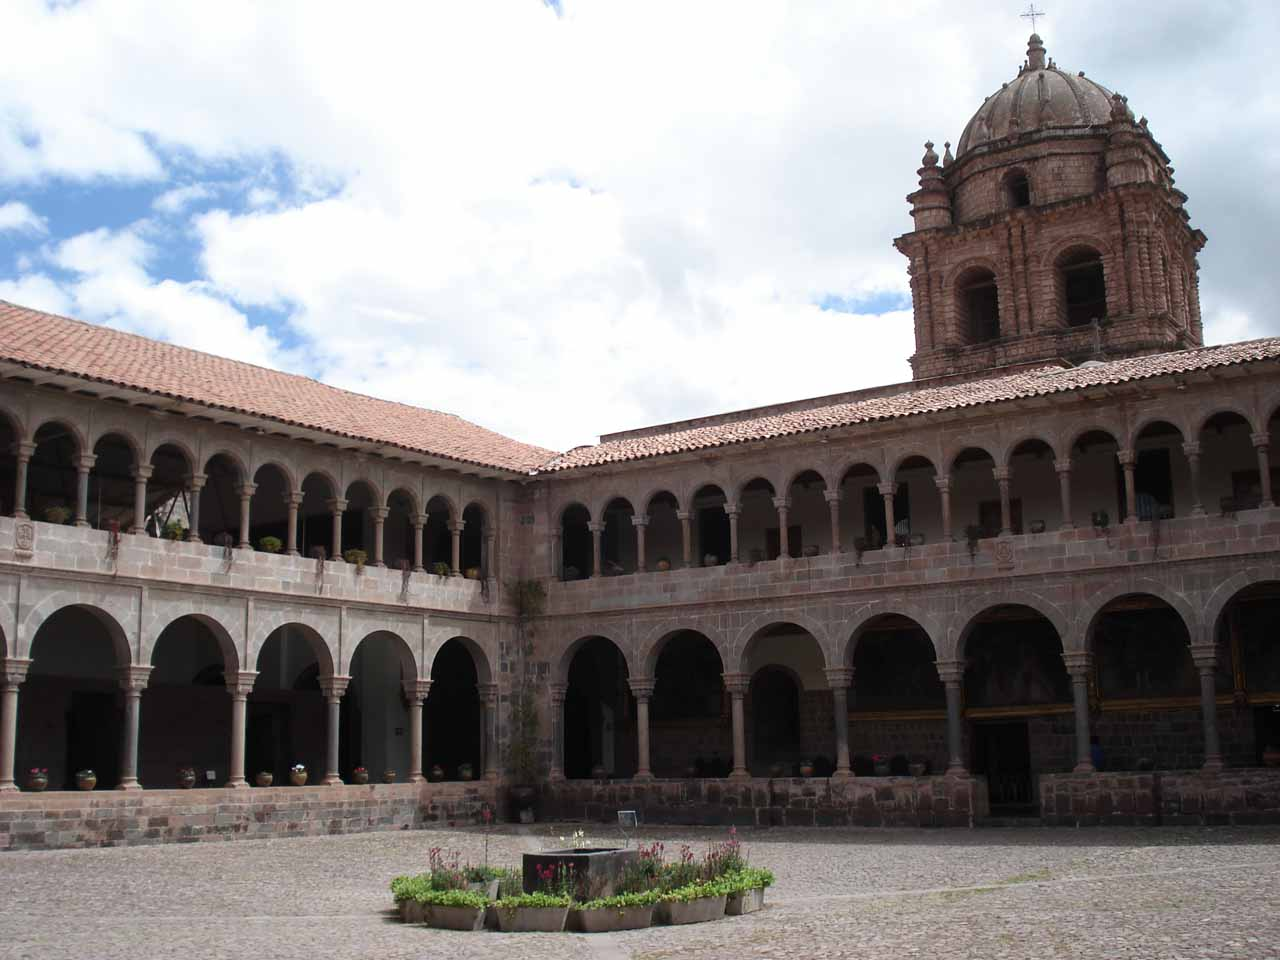 A plaza in the heart of Qorikancha in Cusco